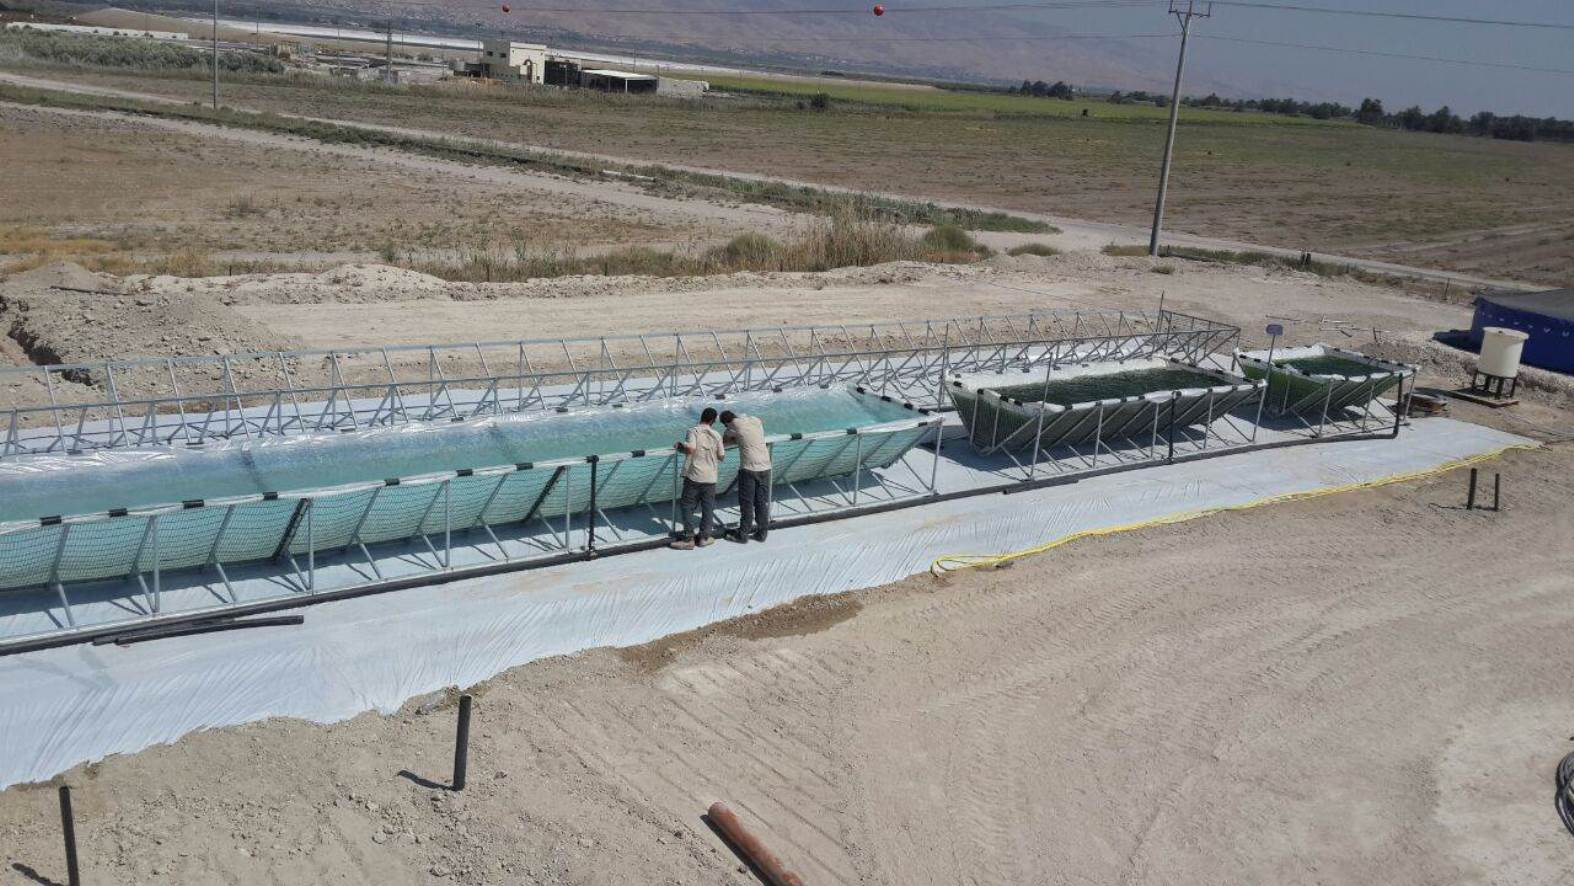 Univerve's microalgae farm under construction in the Beit She'an Valley. Photo: courtesy